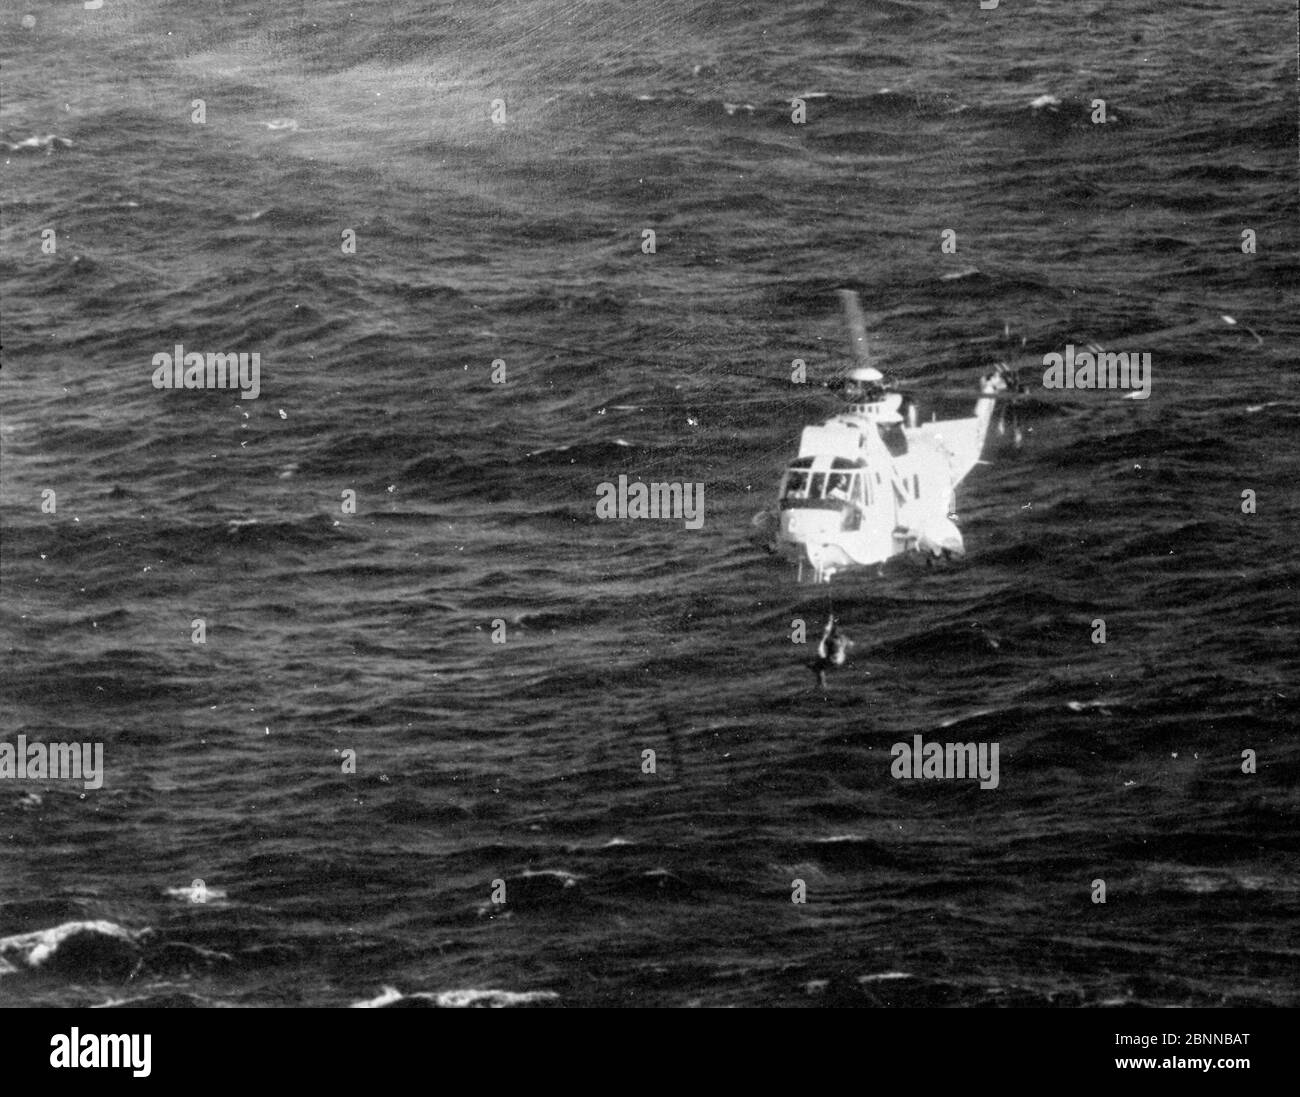 AJAXNETPHOTO. 8TH JUNE, 1980. WESTERN APPROACHES. - FRENCH SOLO YACHTSMAN RESCUE - A ROYAL NAVAL AIR SERVICE SEA KING HELICOPTER HOISTING FRENCH YACHTSMAN JACQUES TIMSIT TO SAFETY FROM THE OCEAN AFTER HIS TRANSATLANTIC RACE YACHT MOTOROLA 38 HIT A SUBMERGED OBJECT AND SANK FOUR DAYS INTO THE SINGLE HANDED RACE FROM PLYMOUTH UK TO NEWPORT, RHODE ISLAND.PHOTO:AJAX NEWS PHOTOS/AJAX NEWS & FEATURE SERVICE REF:8011061 1 086 Stock Photo